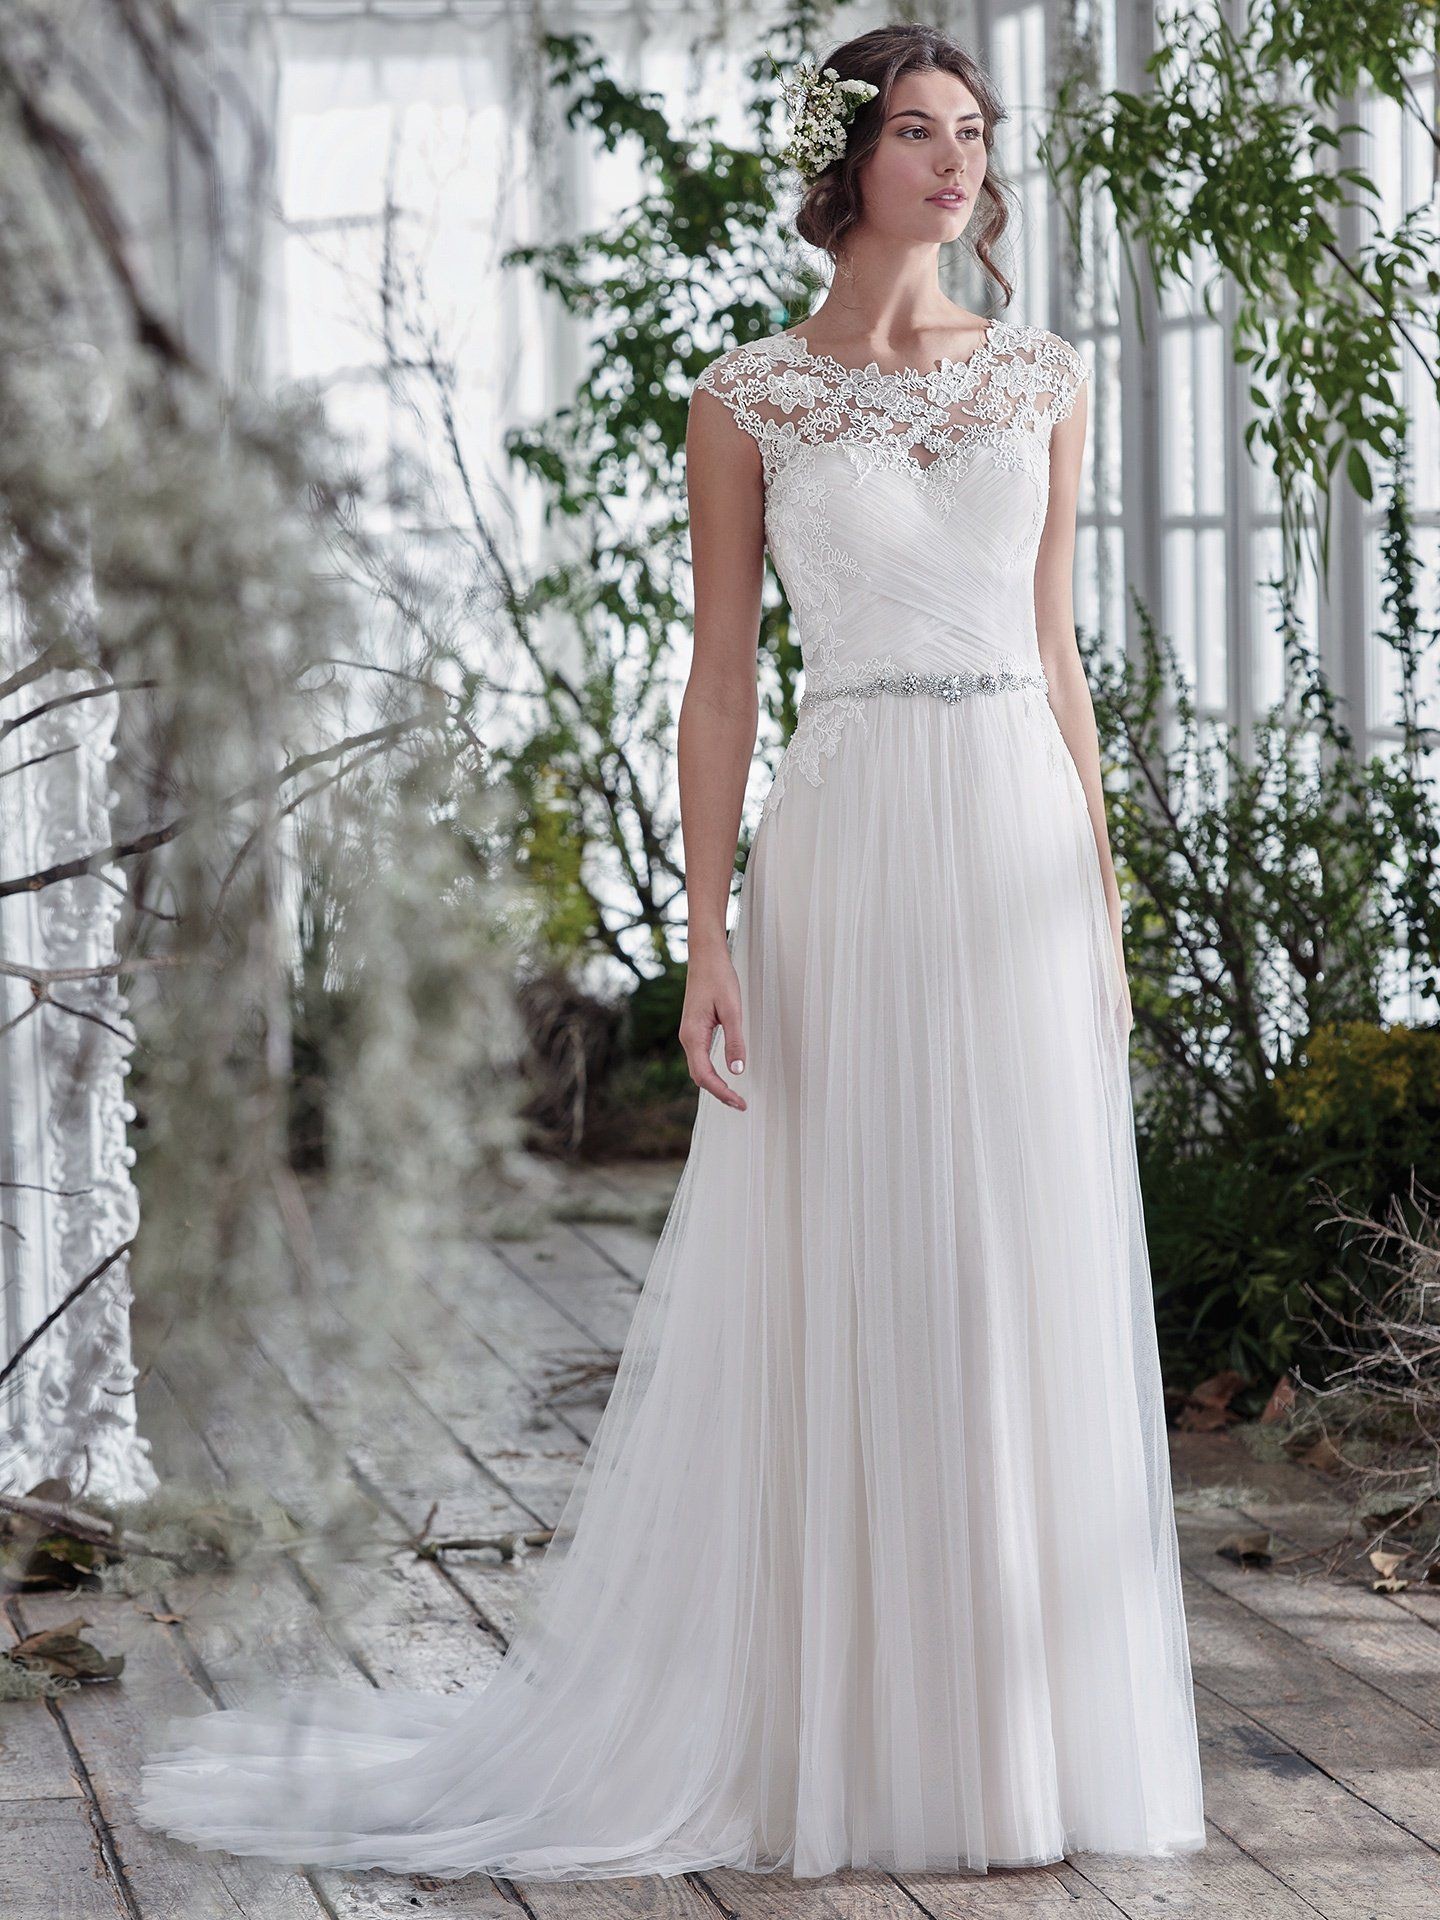 c9c315a3417 ... perfect wedding dress waiting to be discovered. Romantic ball gowns